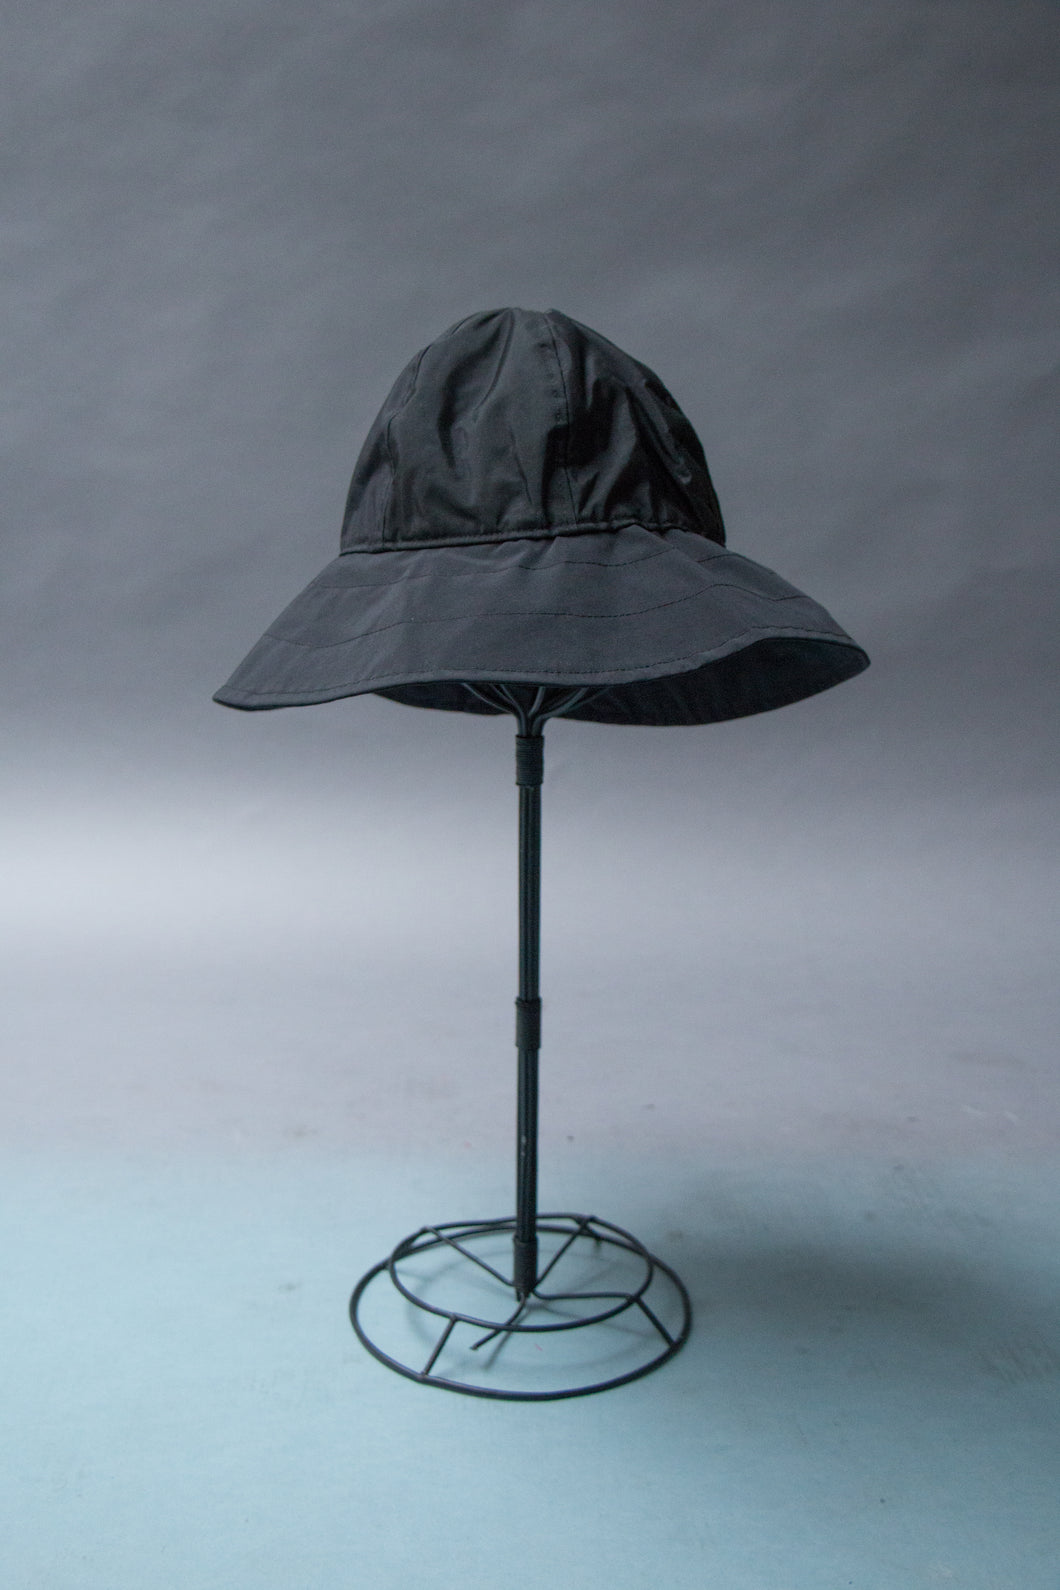 *Black Lined Rain Hat $50 (RH 0614A)